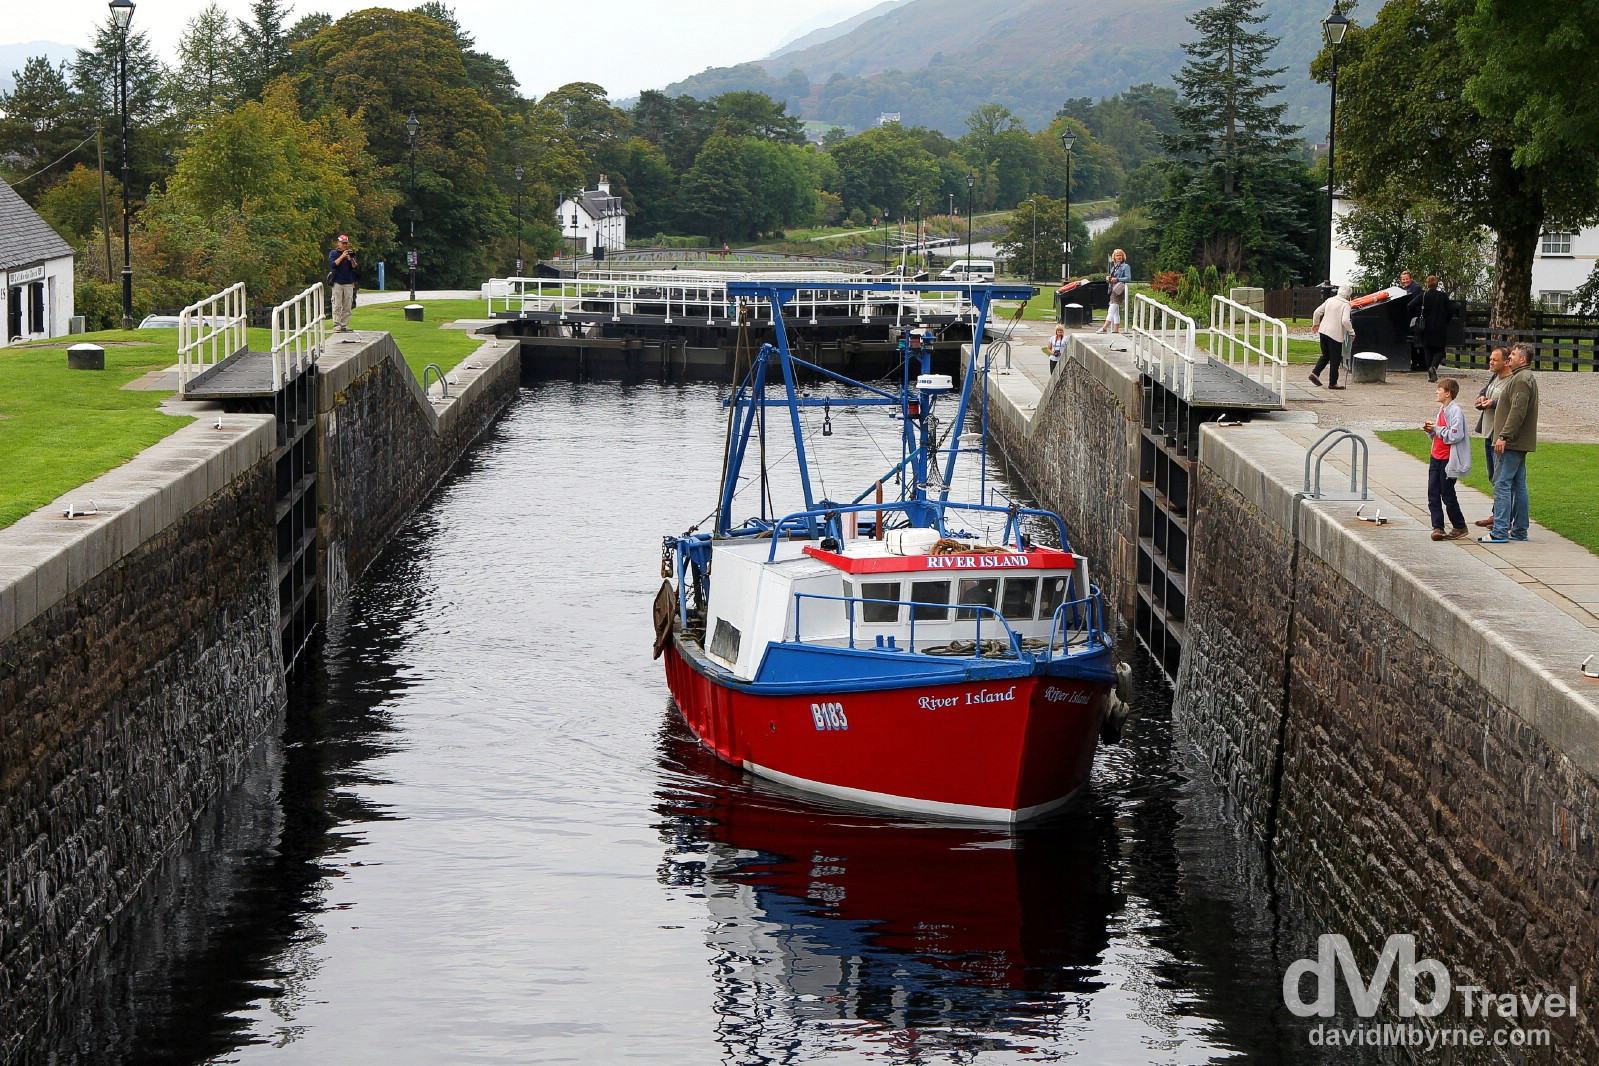 A fishing boat navigating the Neptune's Staircase lock of the Caledonian Canal in Banavie, Scotland. September 18, 2014.